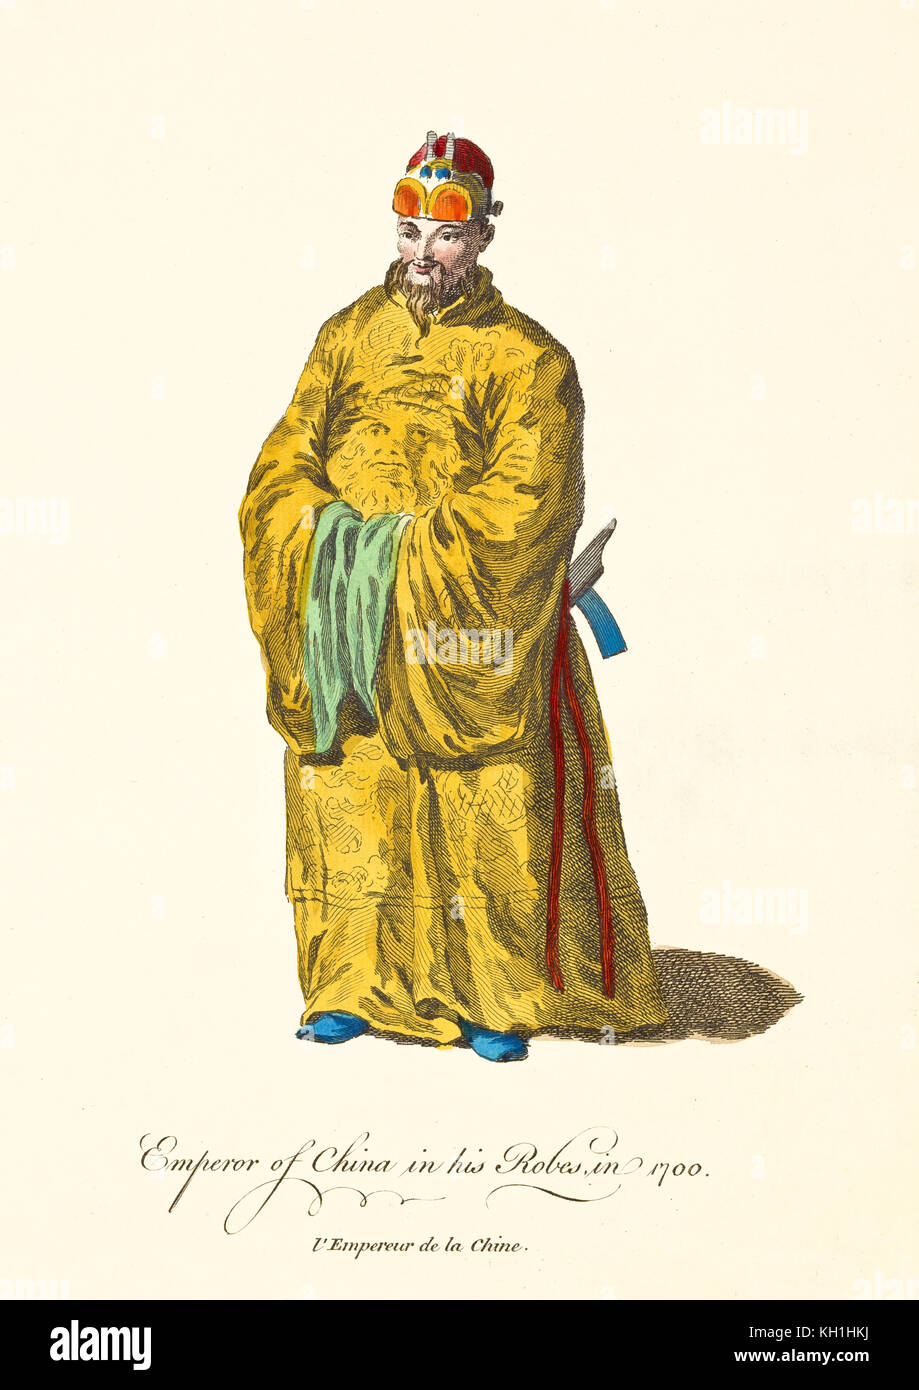 Ancient Chinese Emperor Drawing High Resolution Stock Photography And Images Alamy